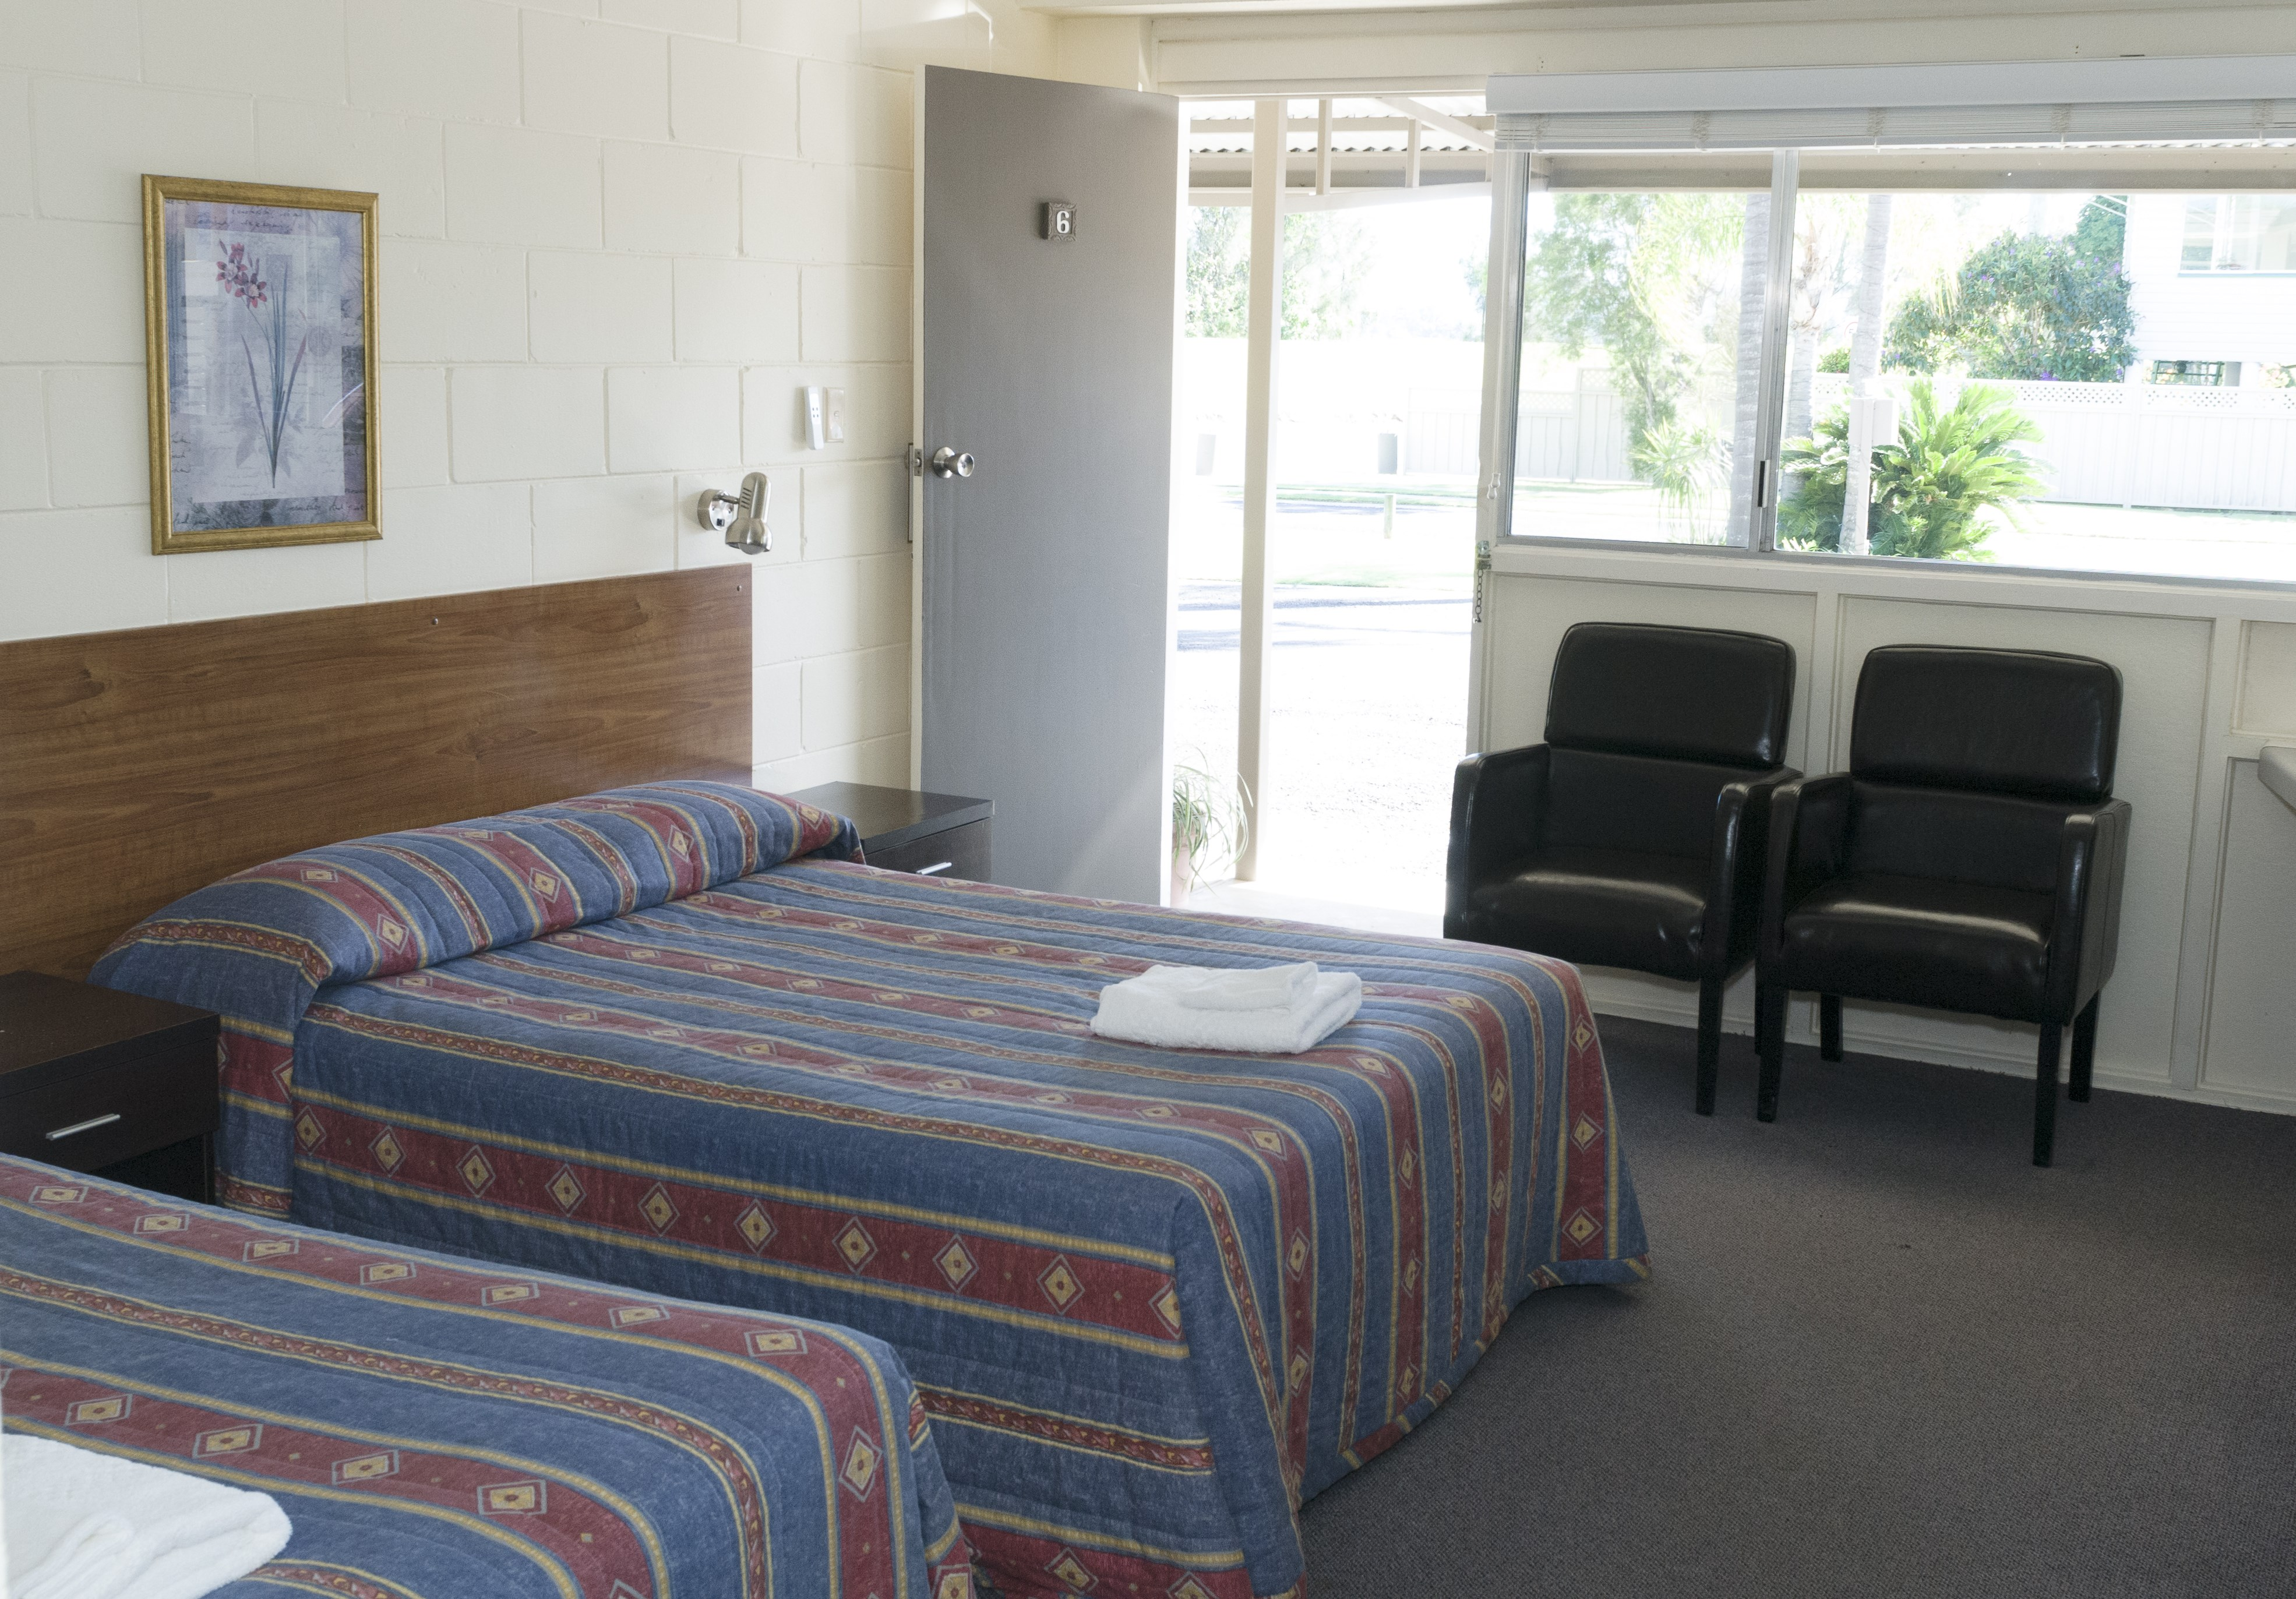 Waterview Motel - Maclean - Accommodation Brunswick Heads